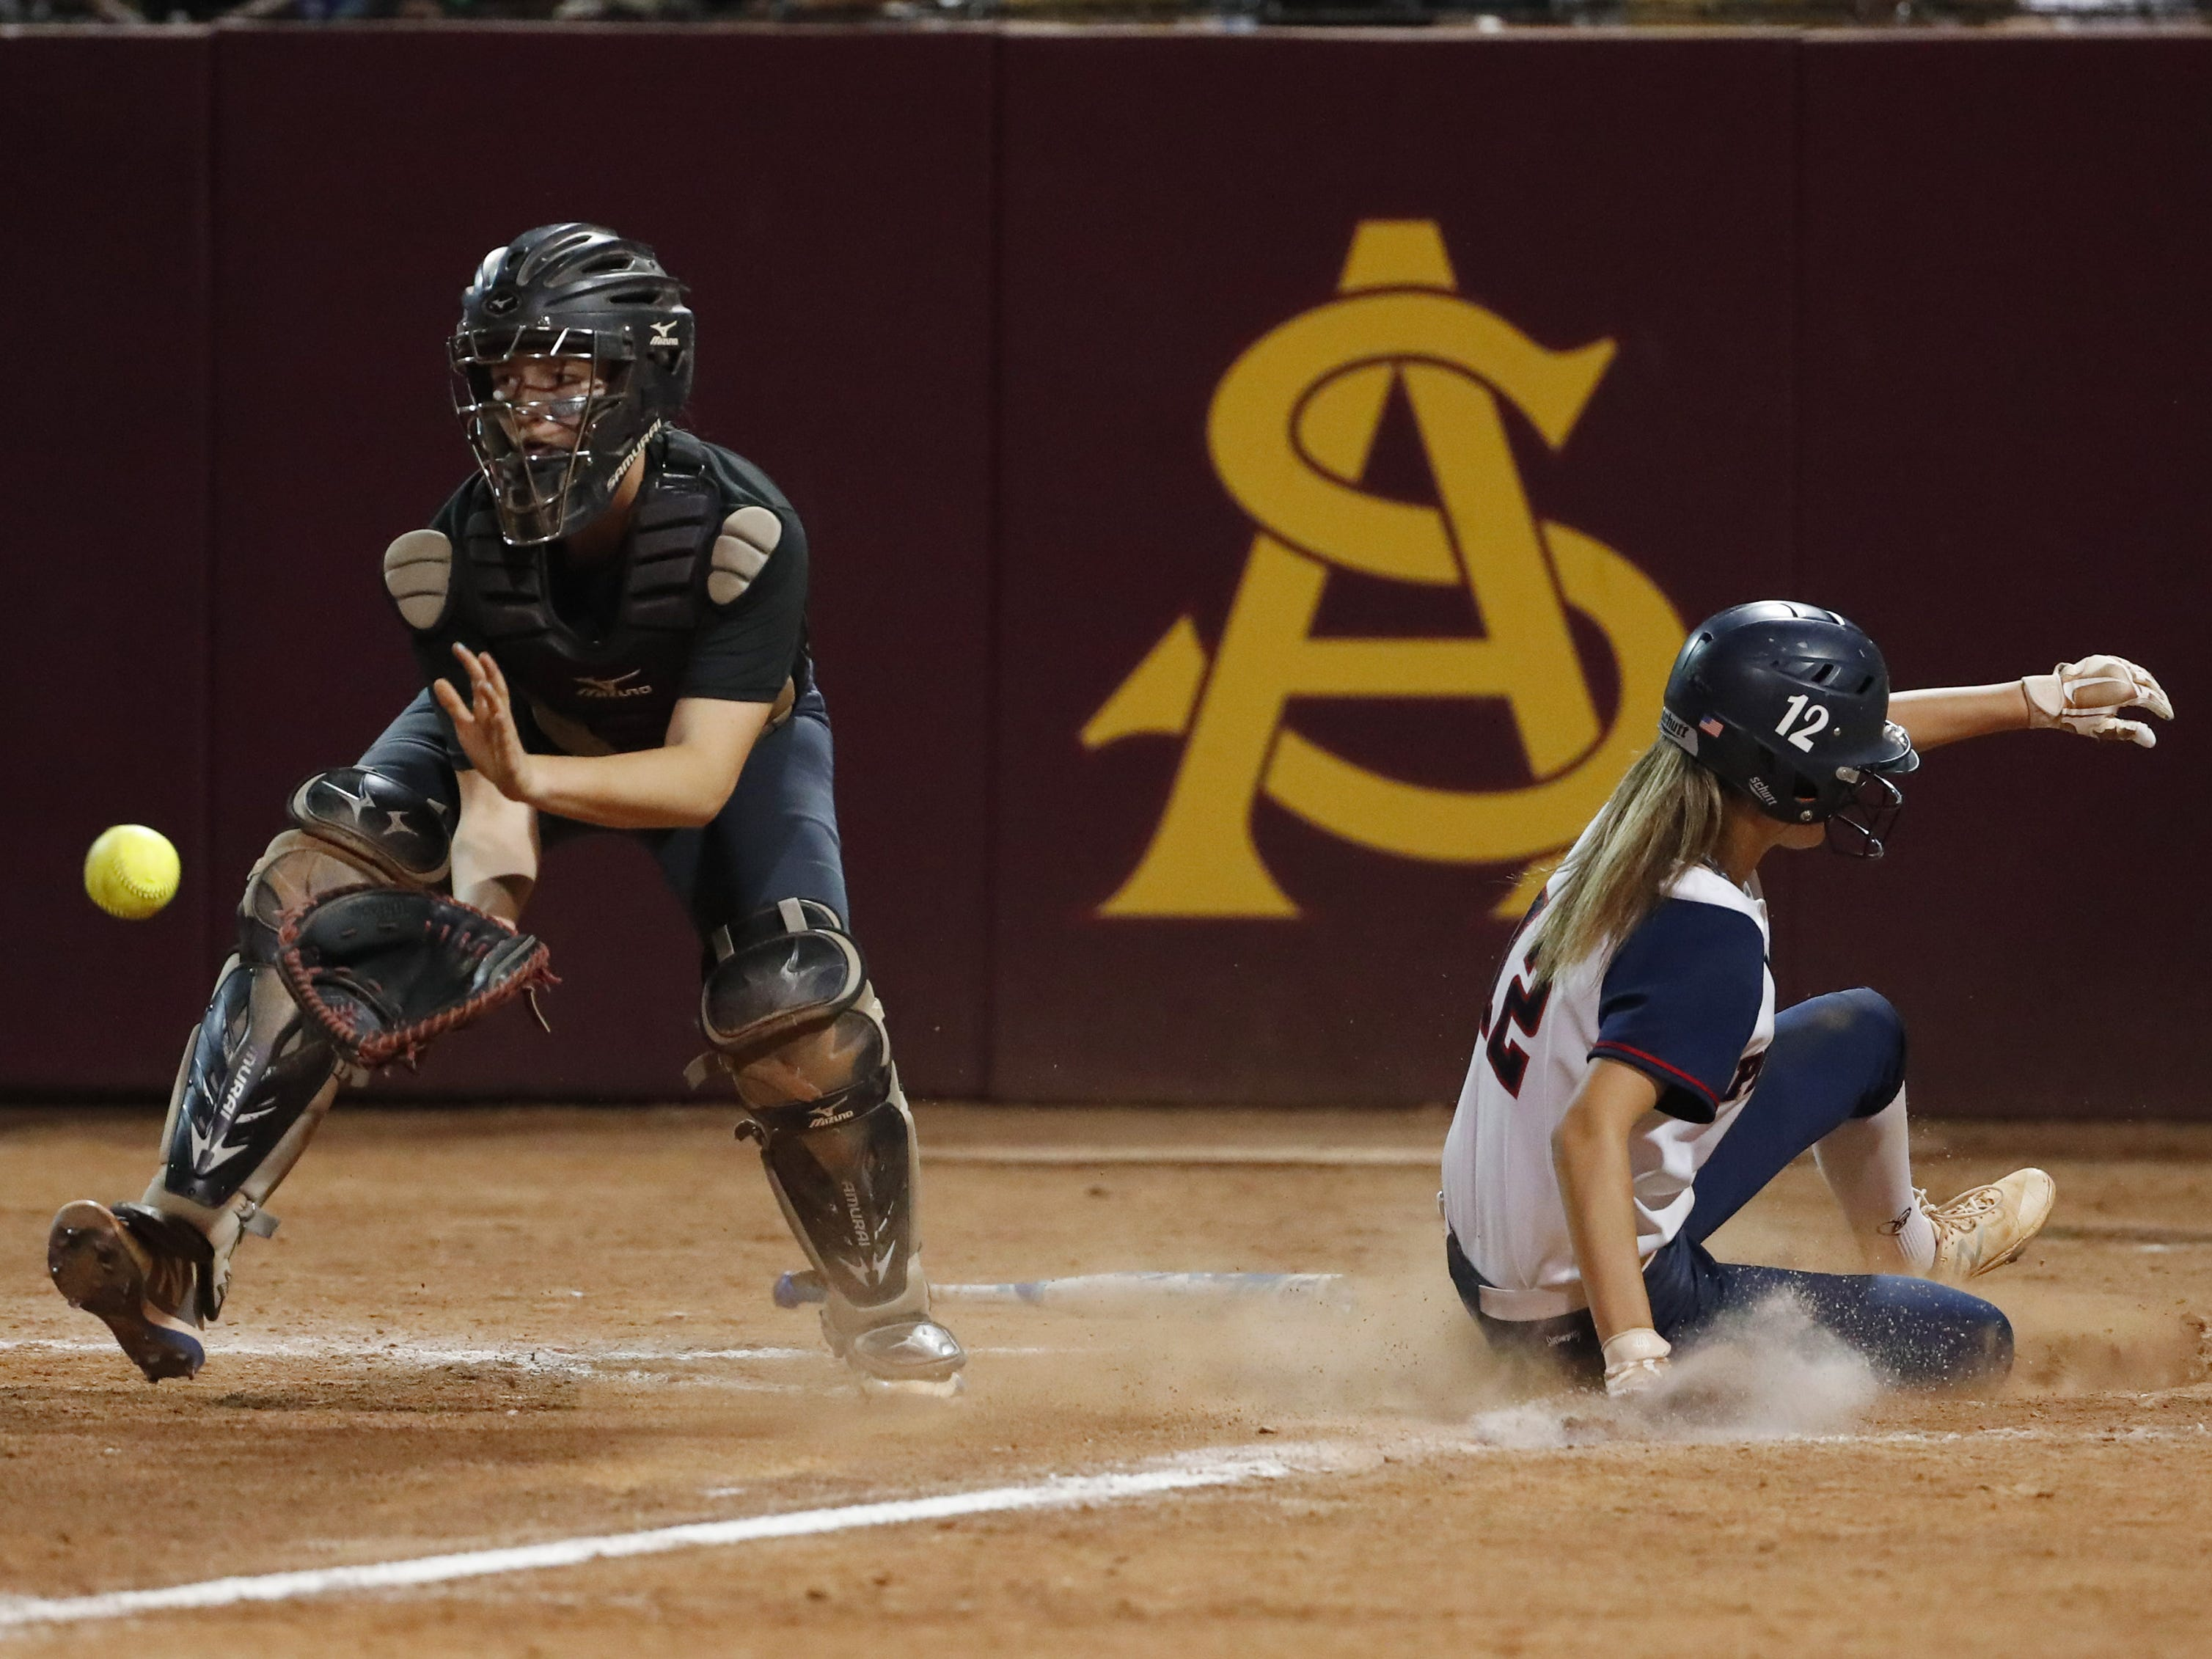 Pinnacle shortstop Emma Bullard (12) scores behind Sandra Day O'Connor catcher Jocelyn Erickson (8) during the 6A State Softball Championship in Tempe, Ariz. May 13, 2019.